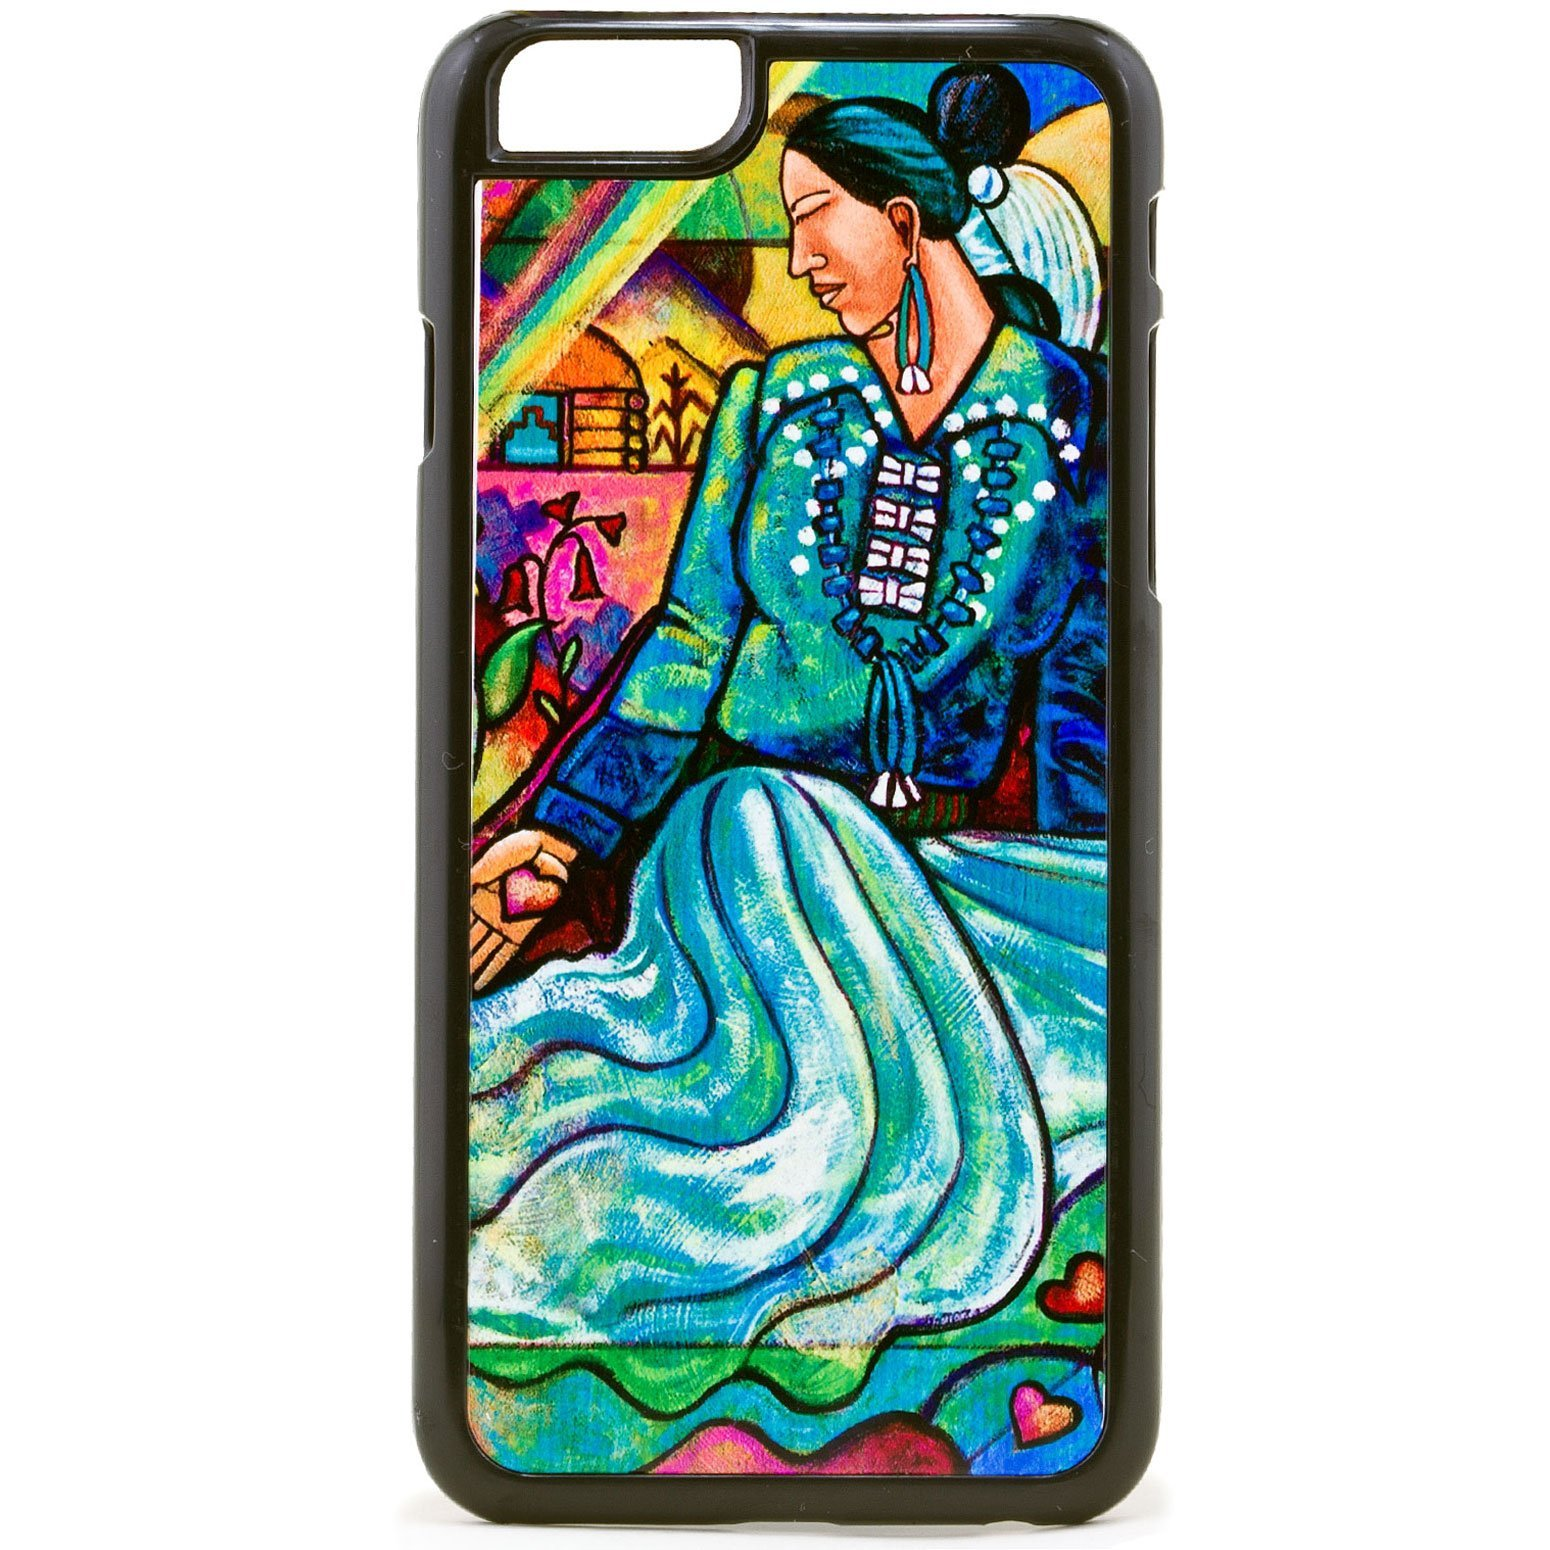 Iphone 6 Phone Cases Navajo Arts And Crafts Enterprise